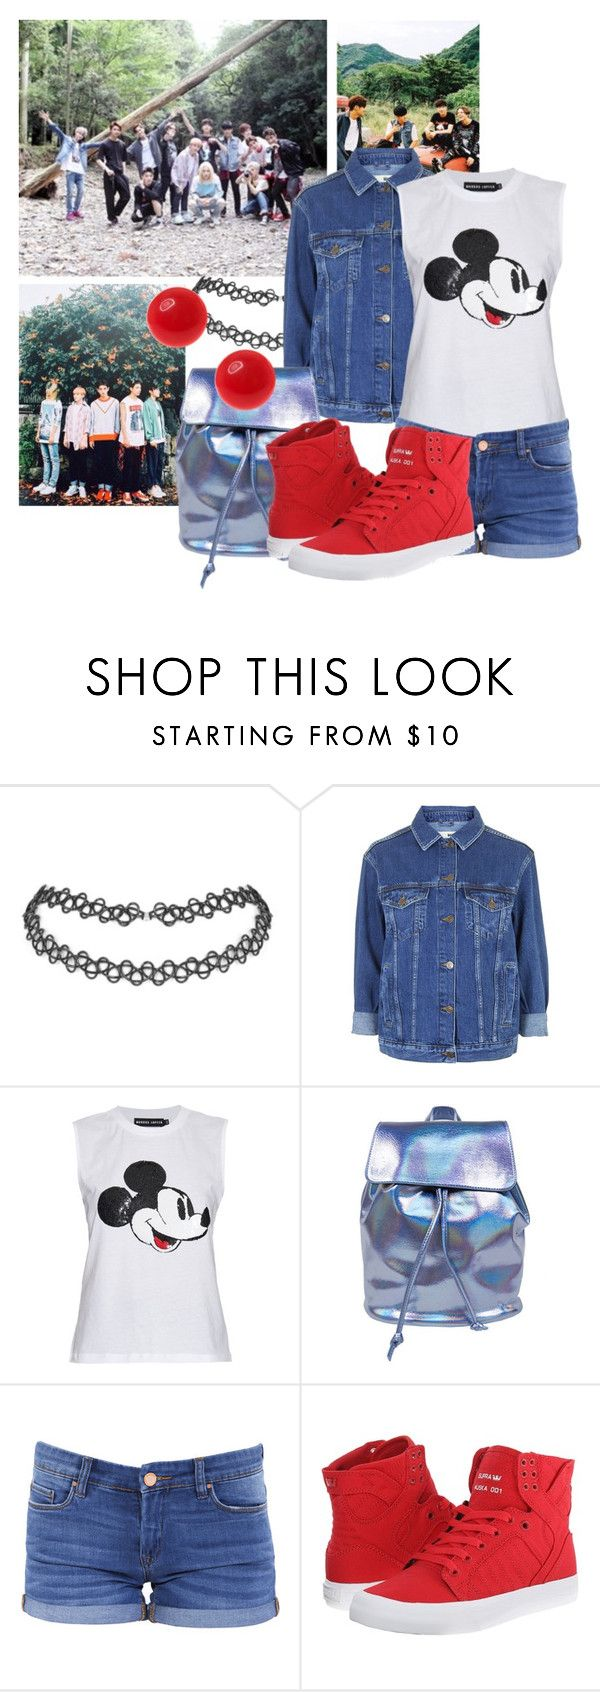 """""""Day with Seventeen"""" by schnpri ❤ liked on Polyvore featuring Topshop, Markus Lupfer, BLANKNYC, Supra, 17, kpop and seventeen"""